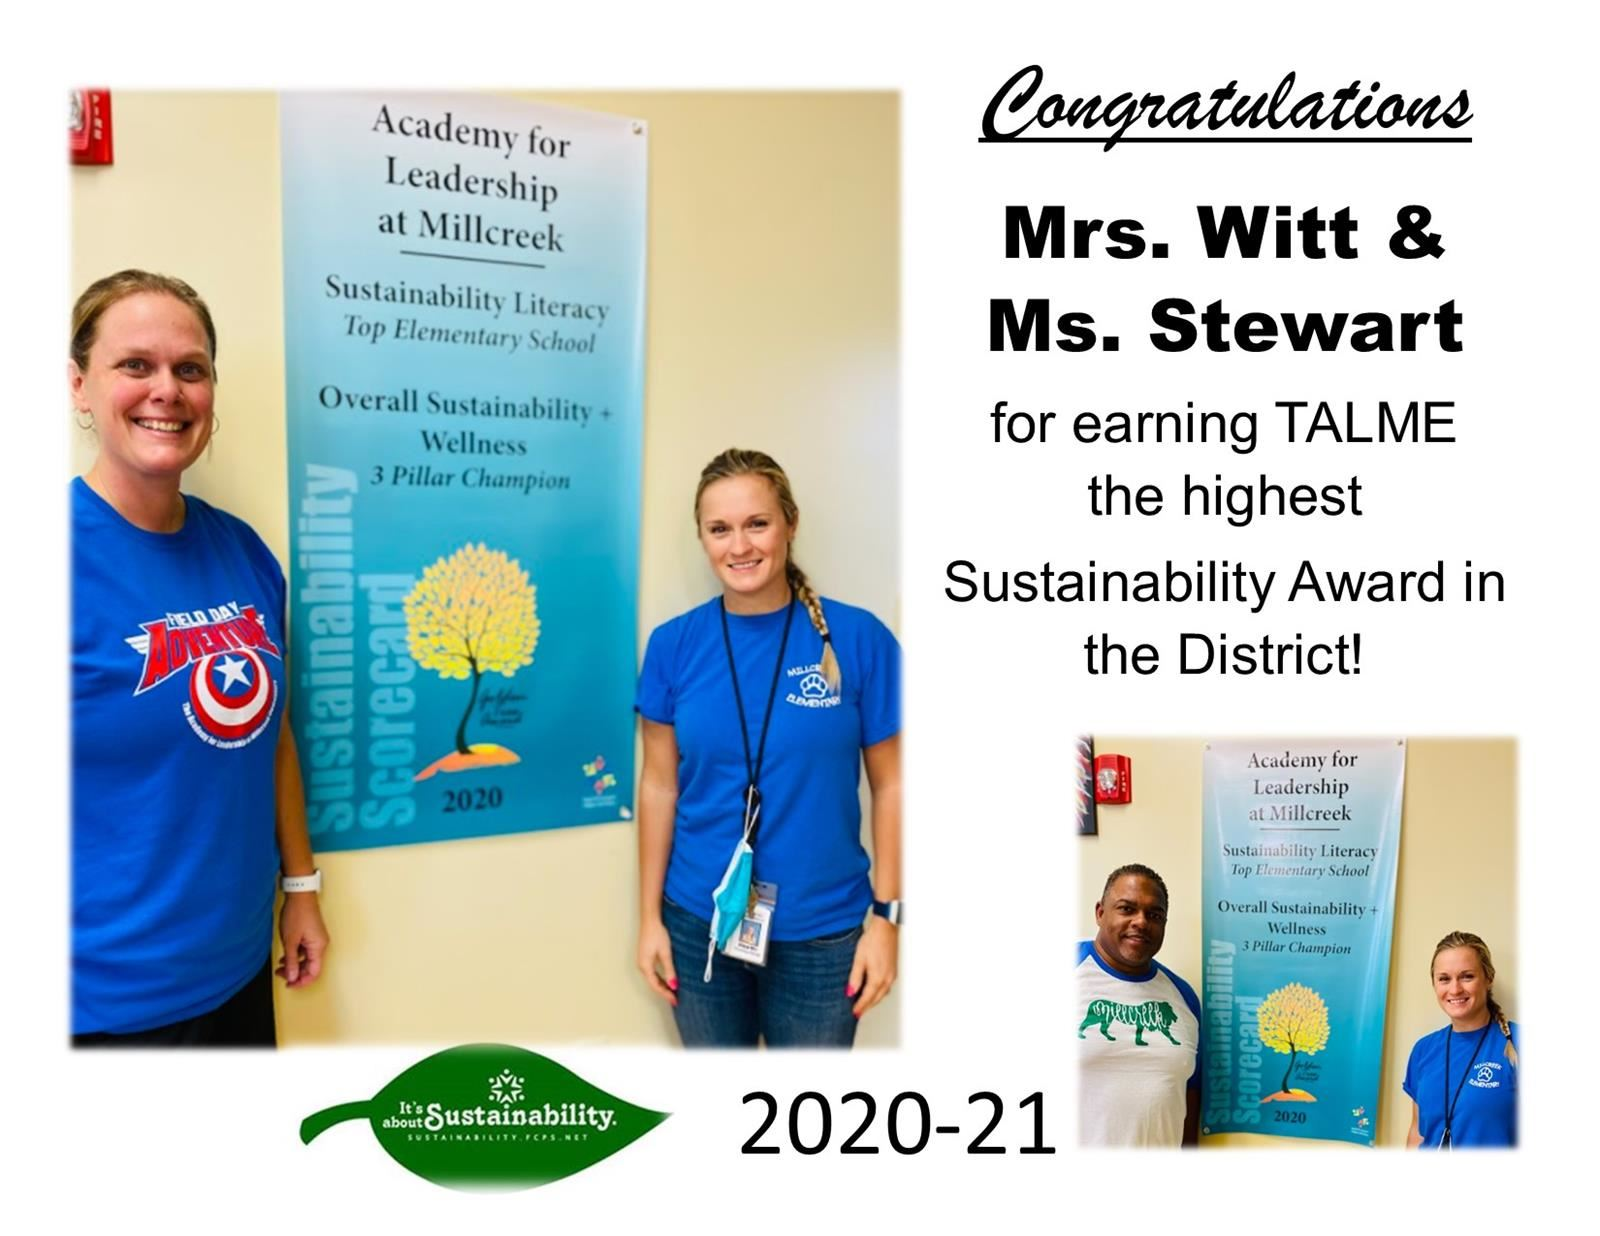 2020 District Sustainability Award